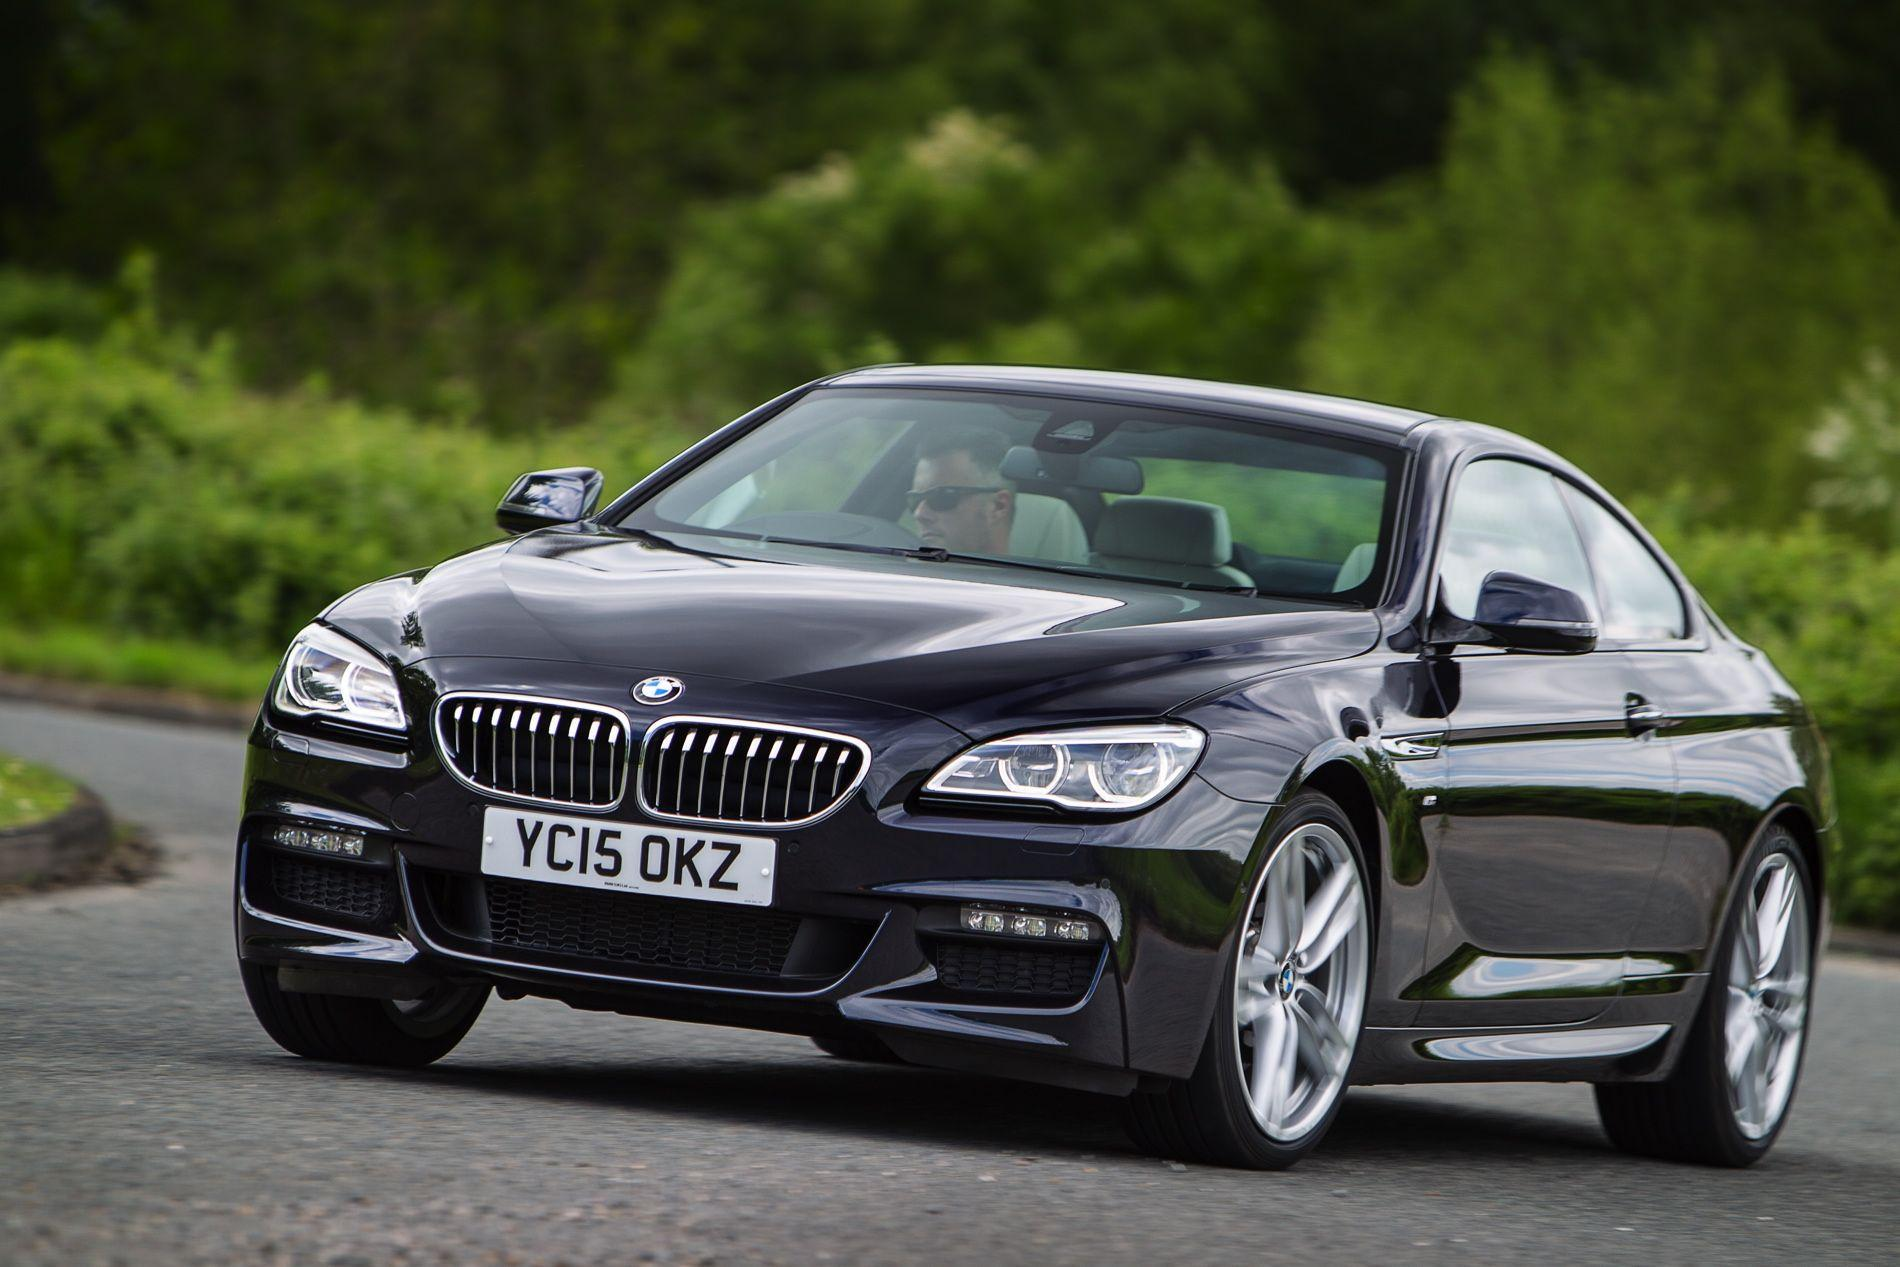 2015 BMW 6 Series Coupe, Convertible, Gran Coupe